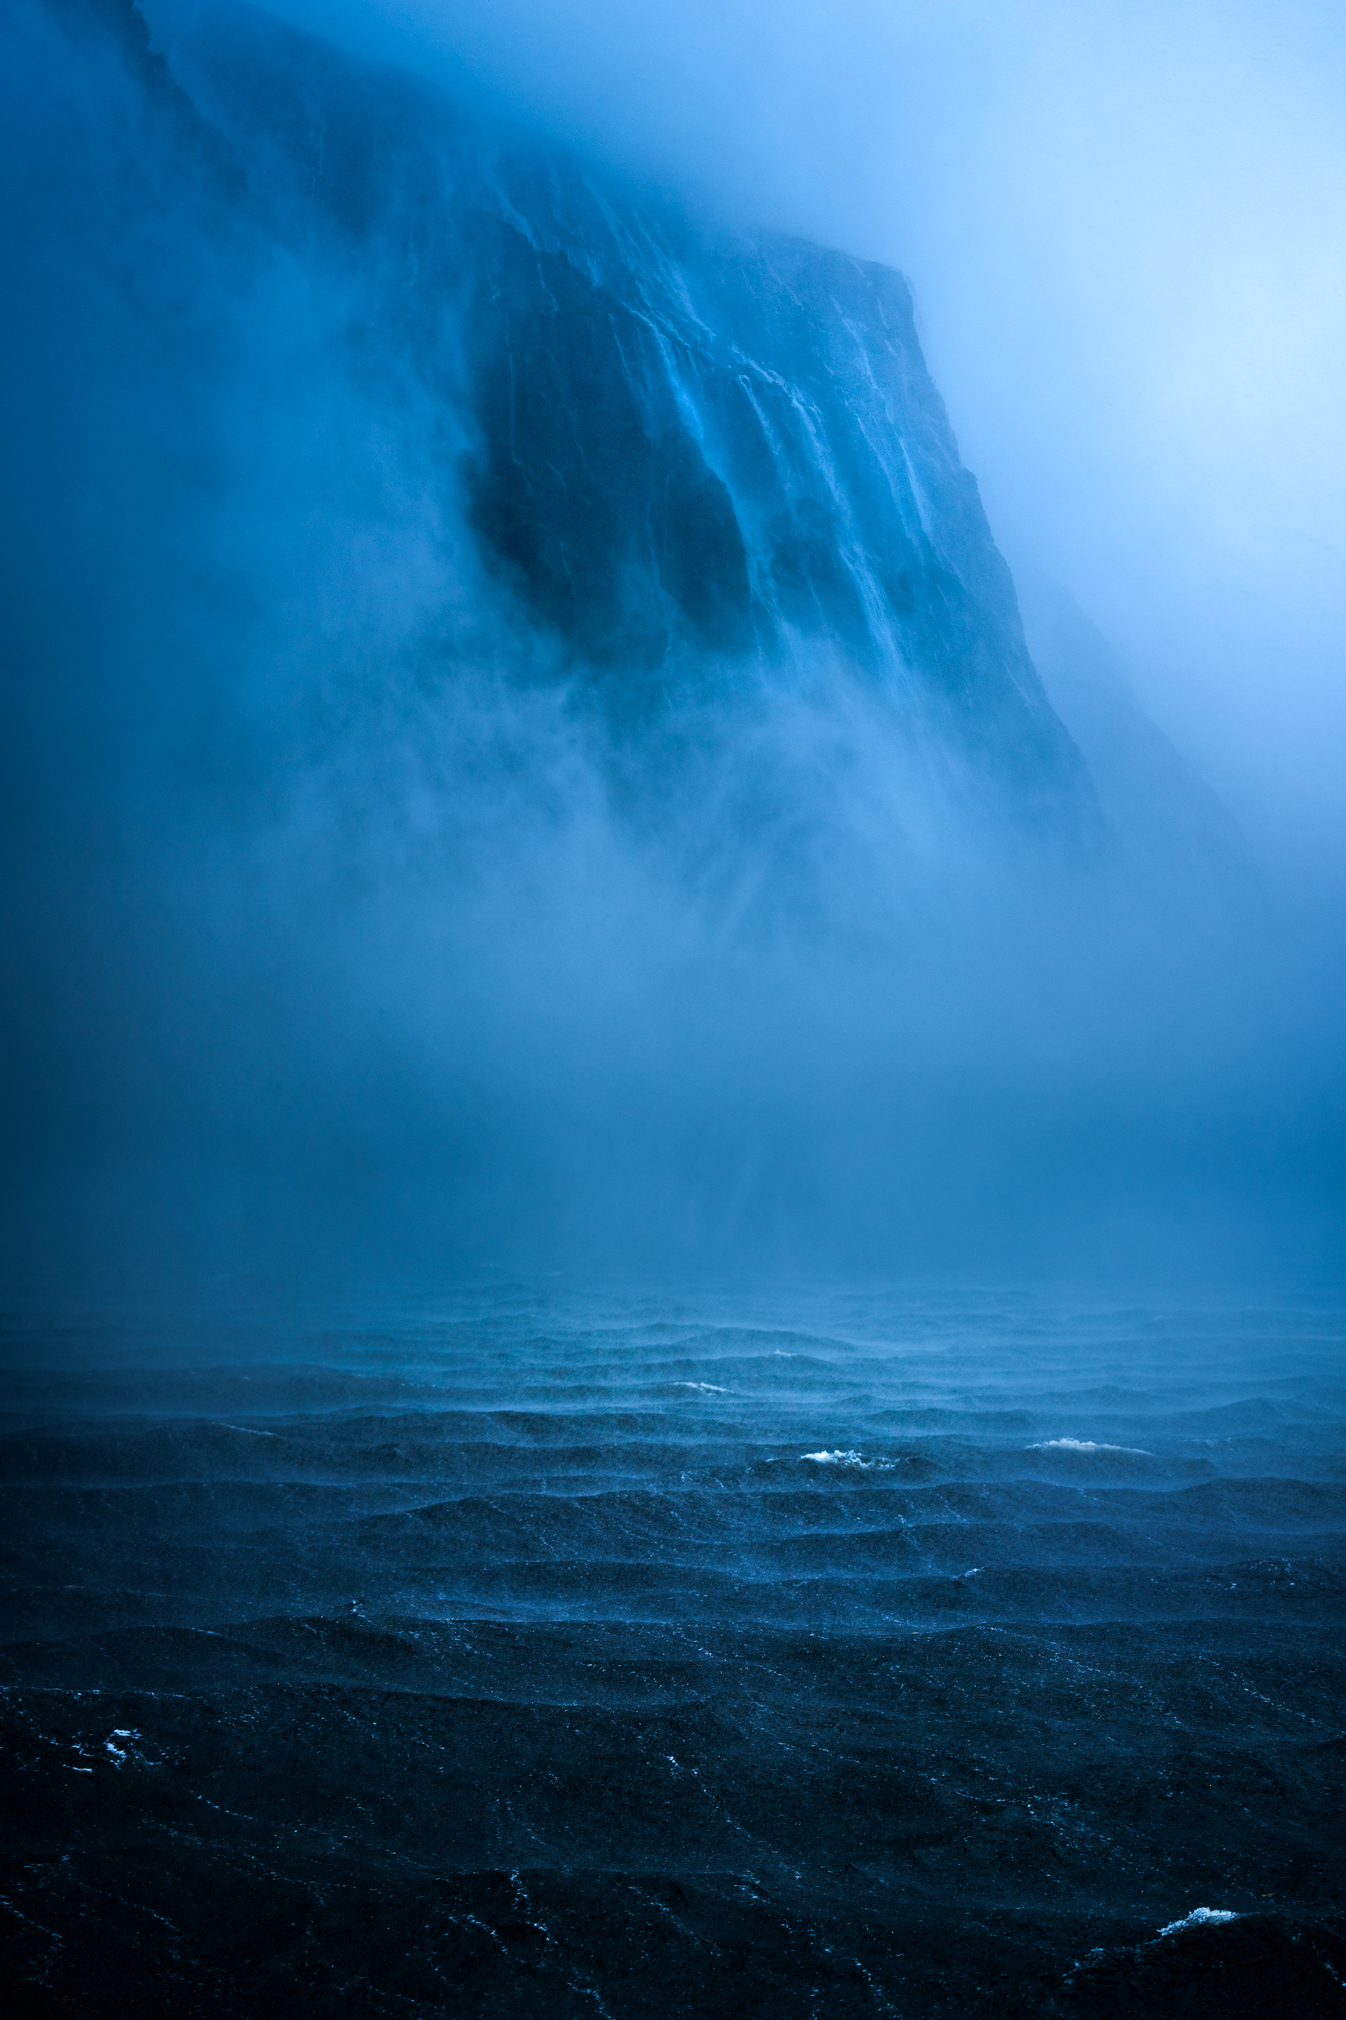 Heavy rainfall, Milford Sound New Zealand